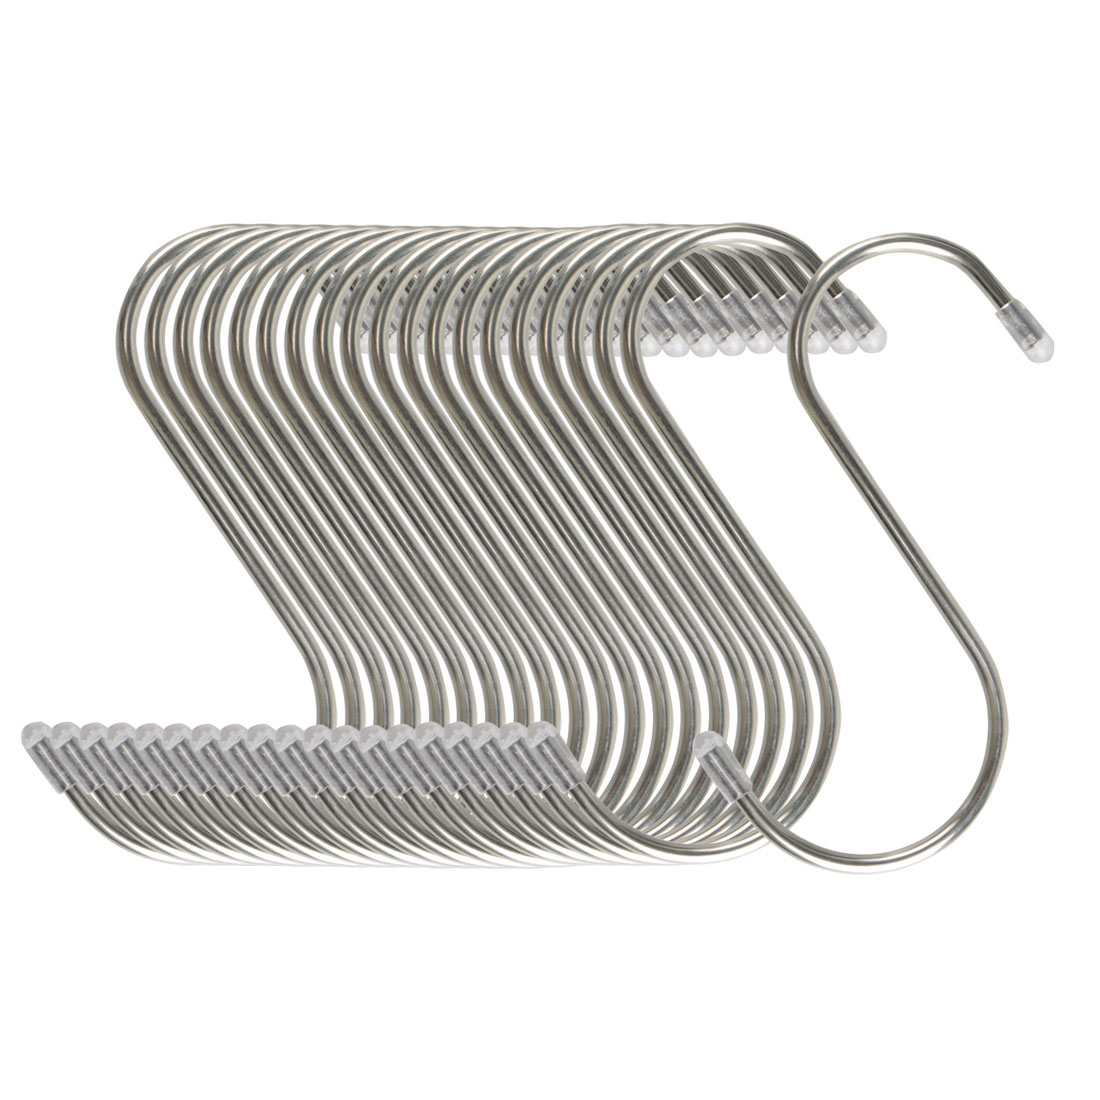 20pcs 4.72 Inch S Shaped Hook Stainless Steel for Kitchenware Hat Coat Holder